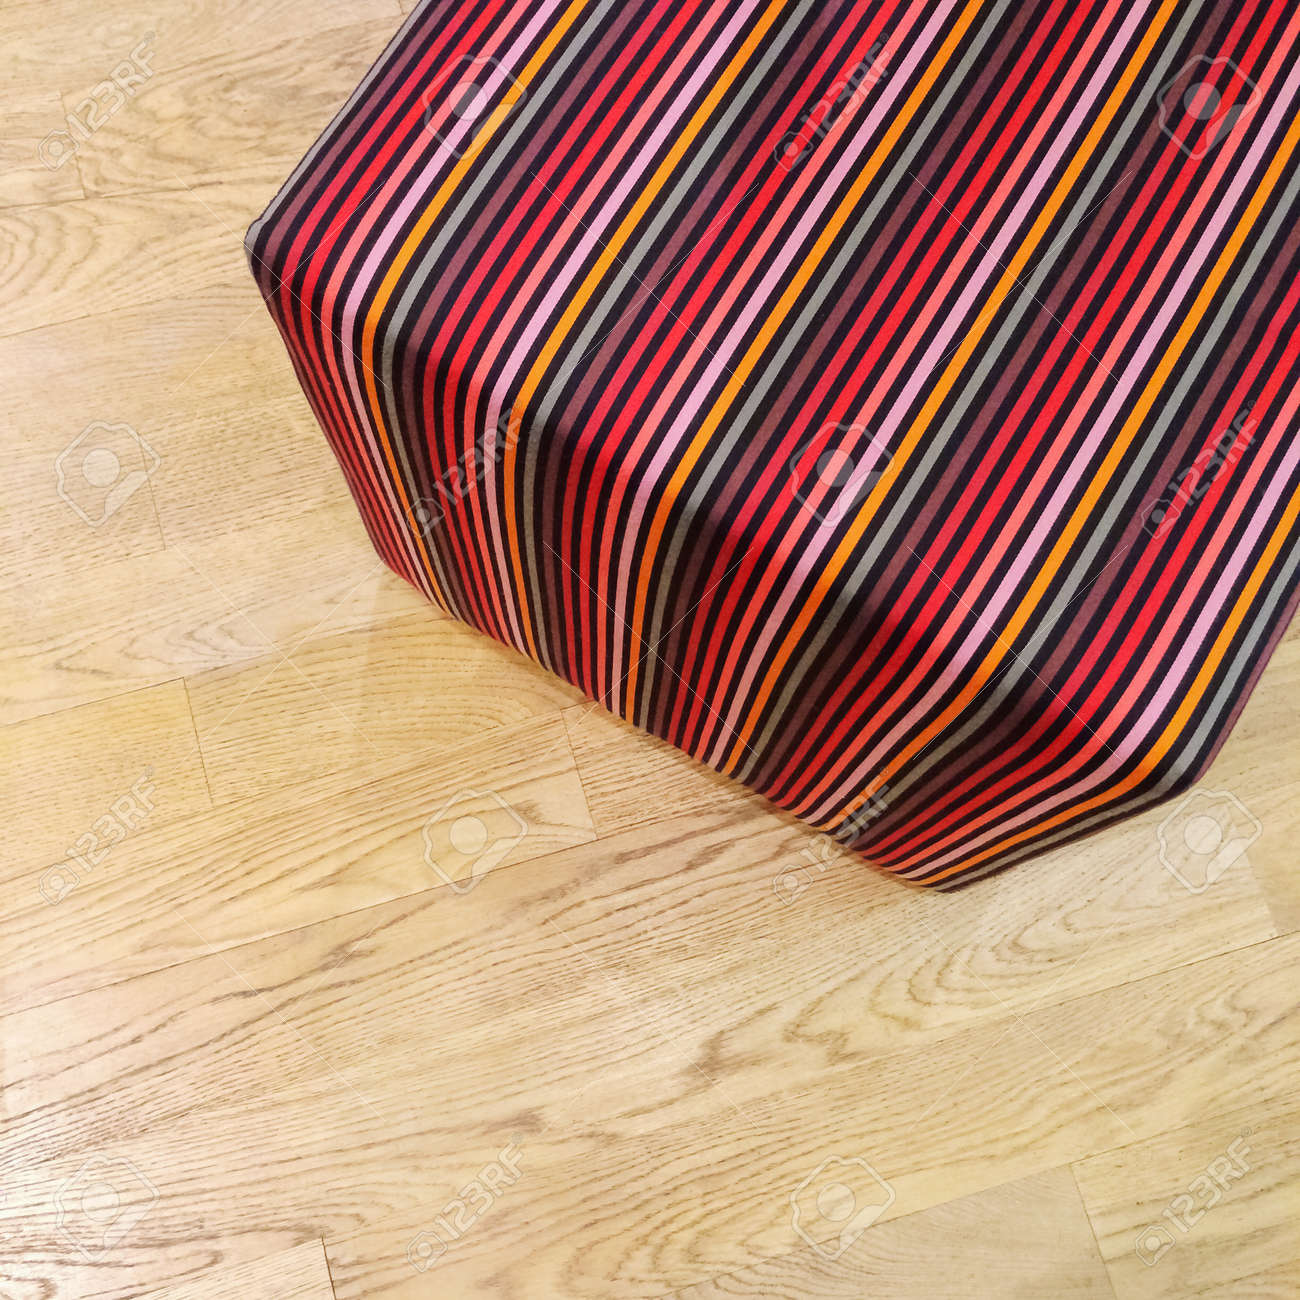 Tremendous Colorful Striped Cube Chair On Wooden Floor Modern Design Furniture Machost Co Dining Chair Design Ideas Machostcouk